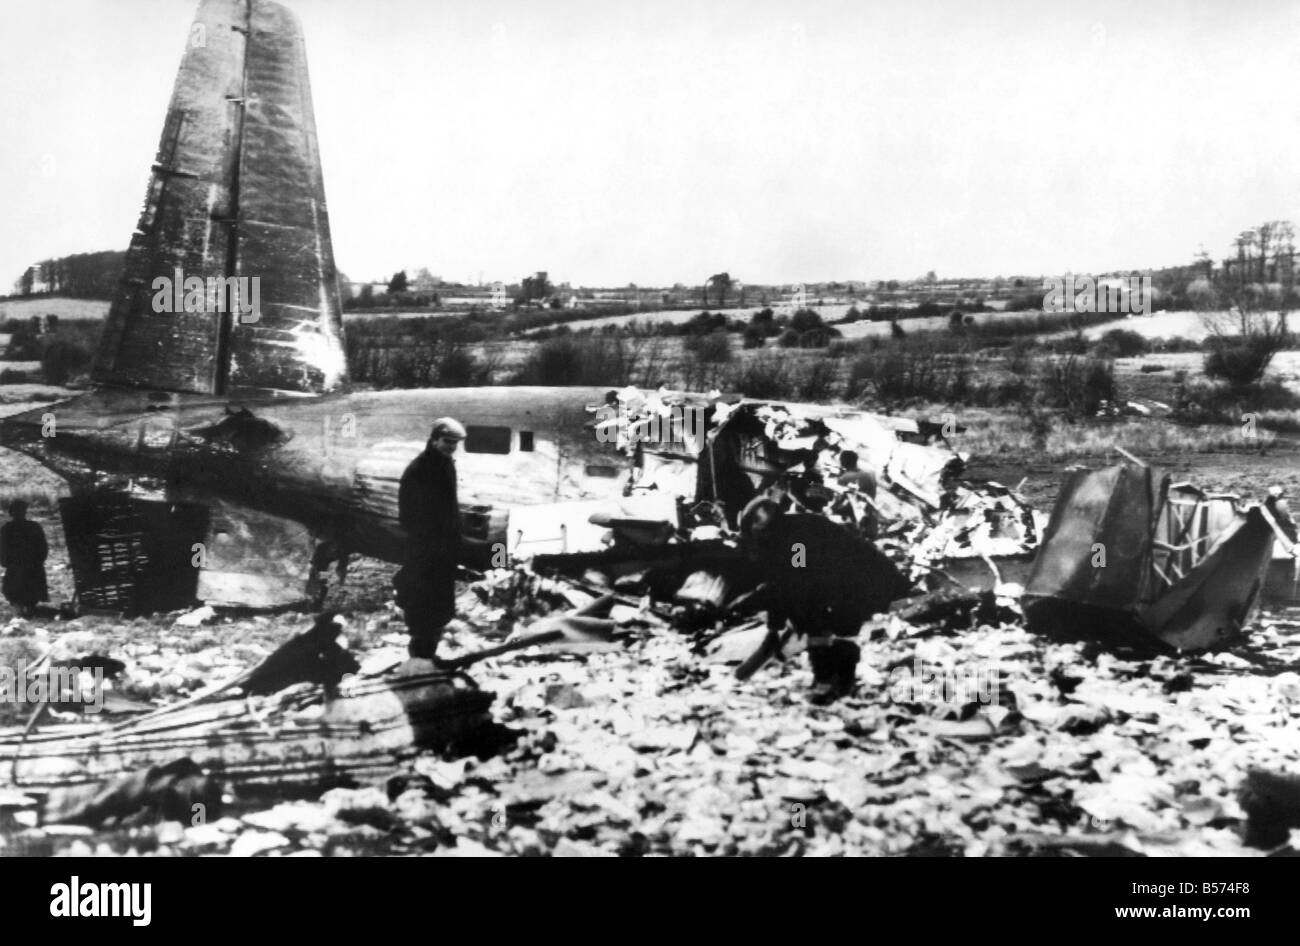 Accidents-Air: Twenty-six people were killed today (26-2-60) in an